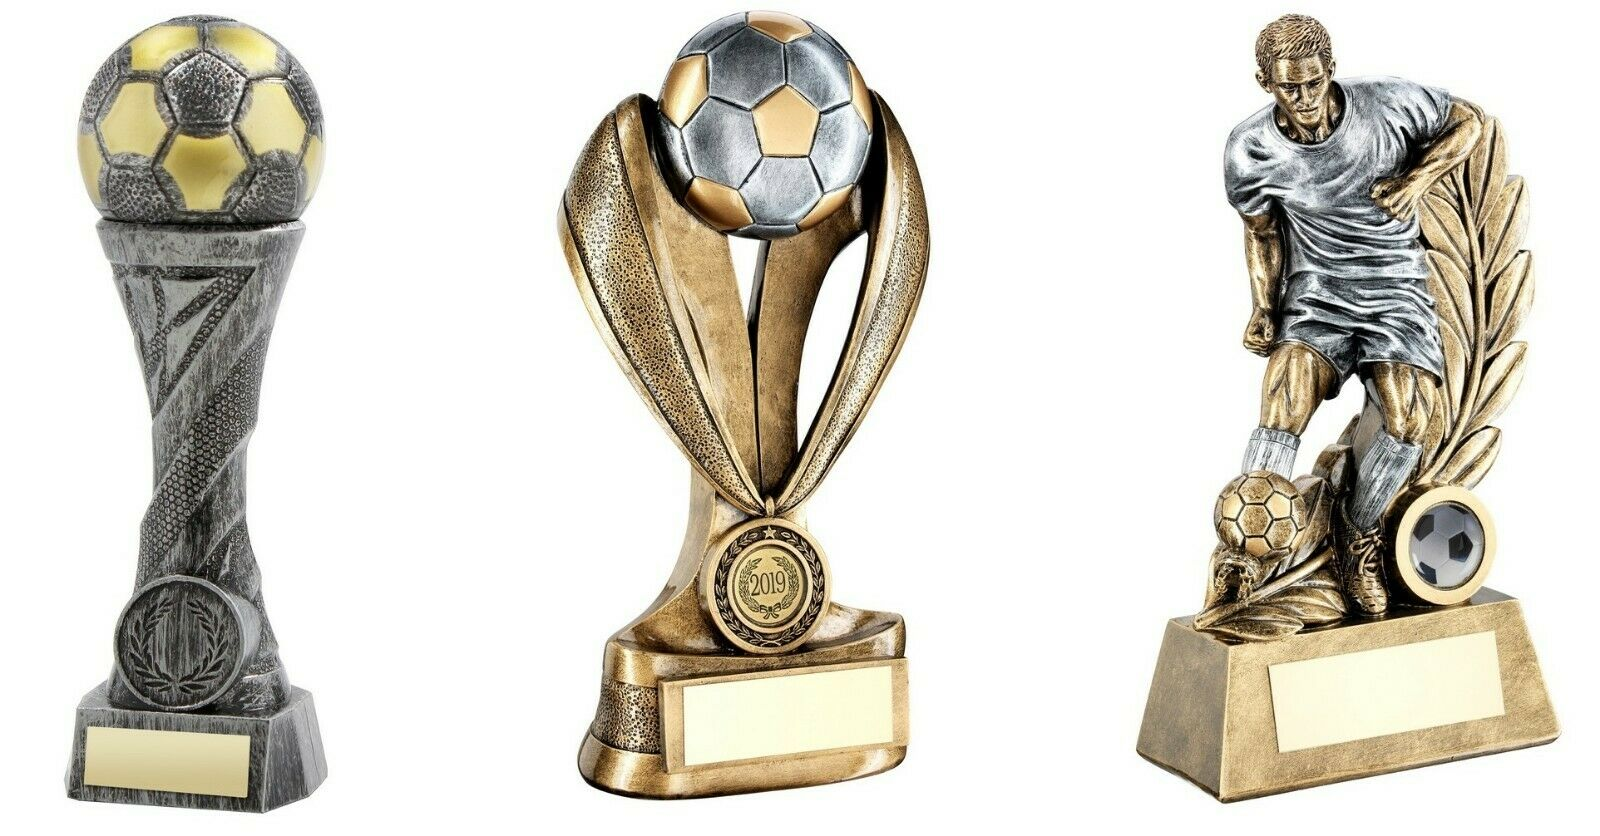 3 x 10 inch Football Trophy Awards engraved post free (RRP .48)